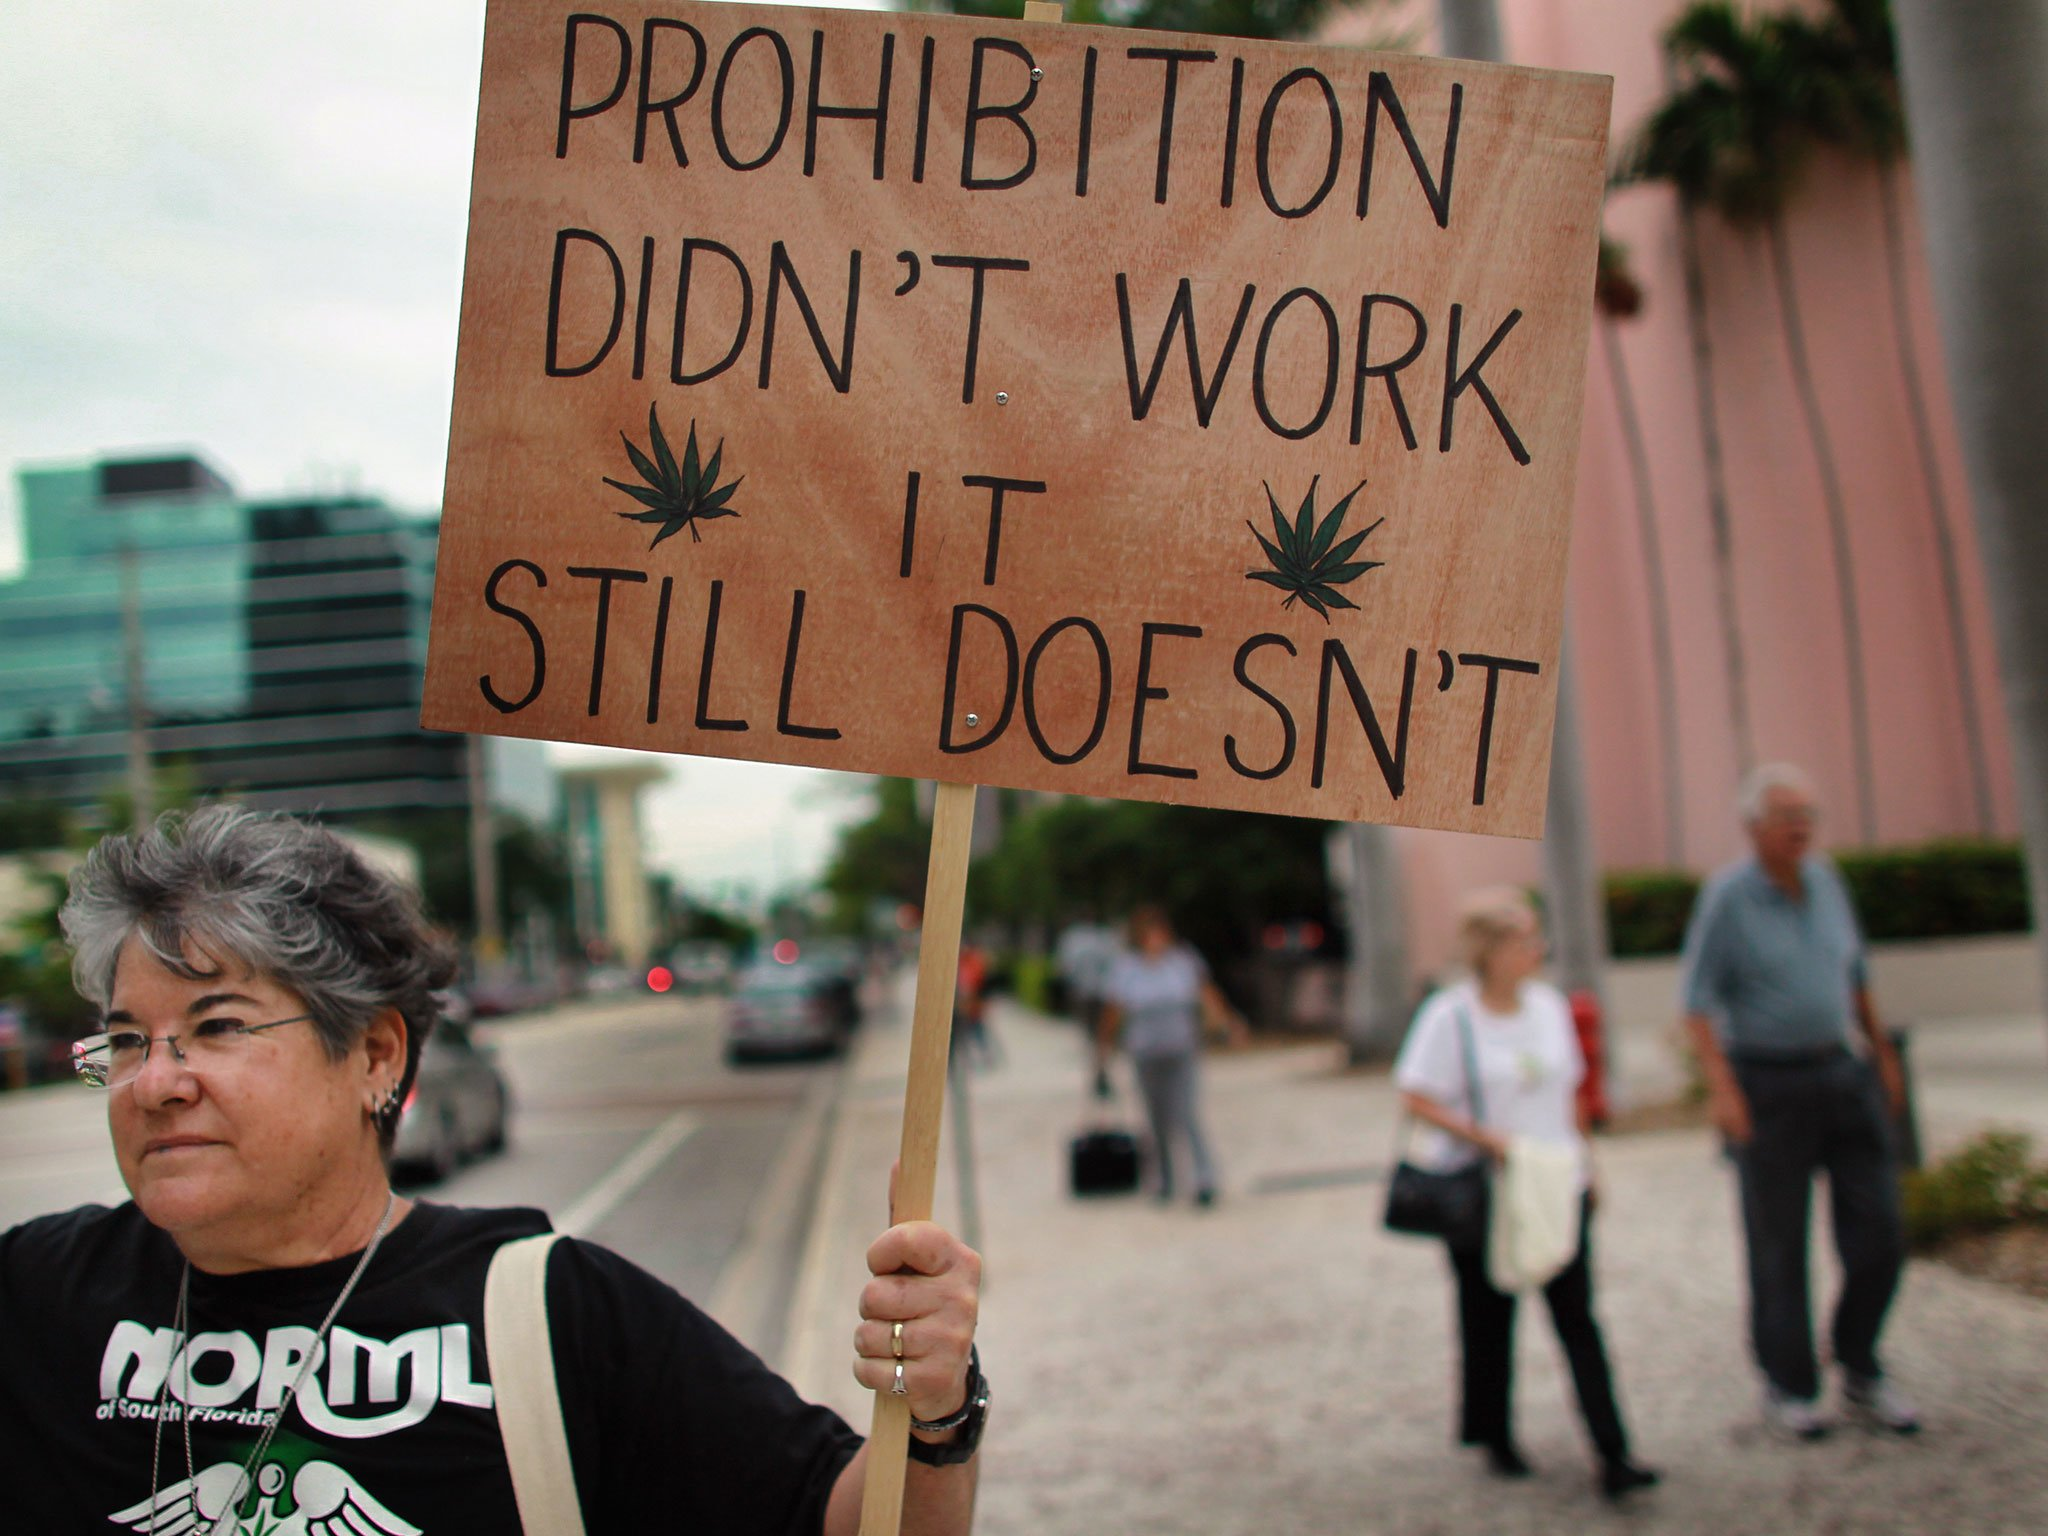 With the election around the corner, major UK parties ignoring drug reform